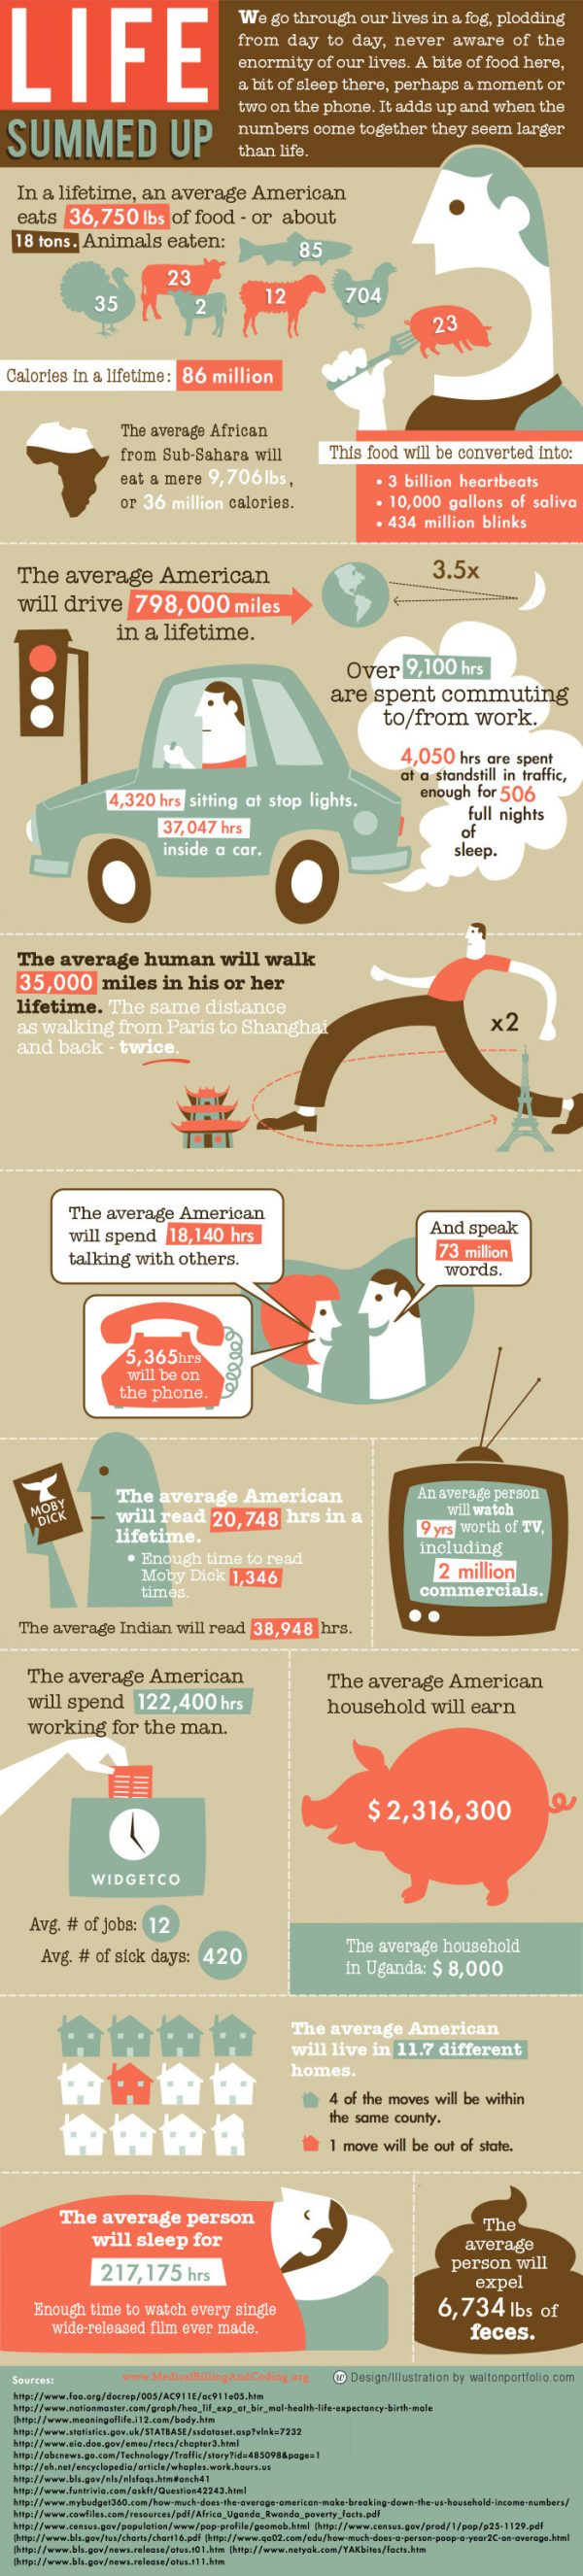 Life Summed Up (Infographic)